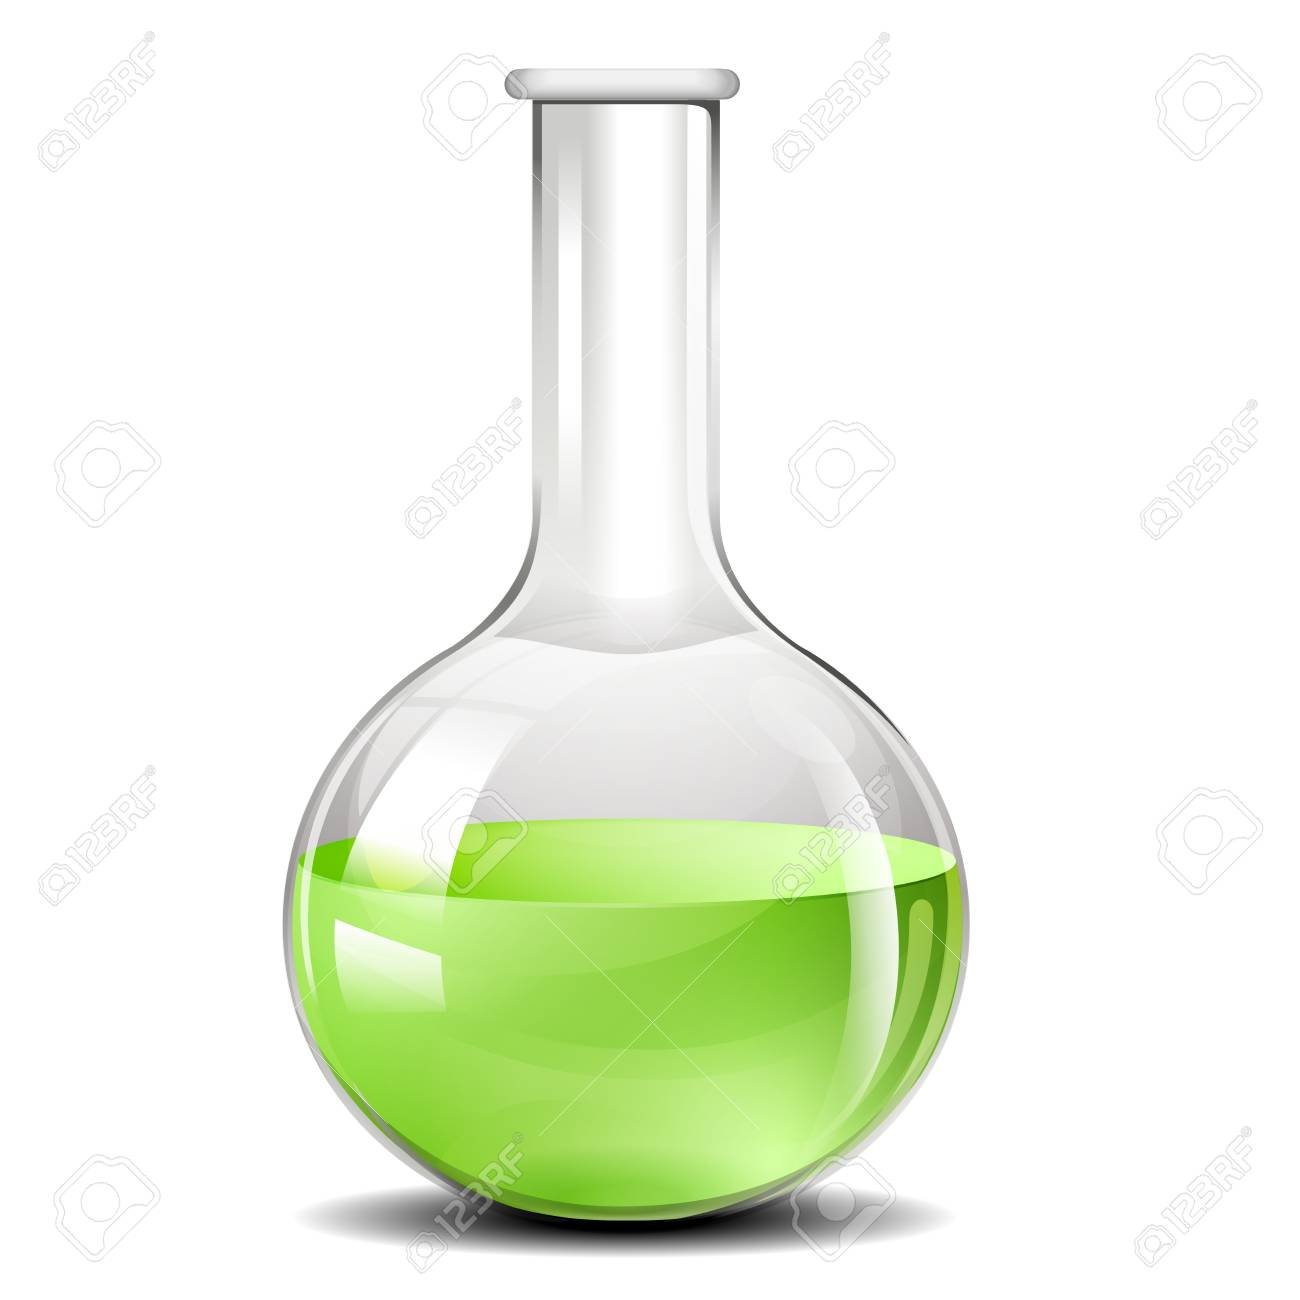 detailed illustration of a testing flask used for chemistry experiments